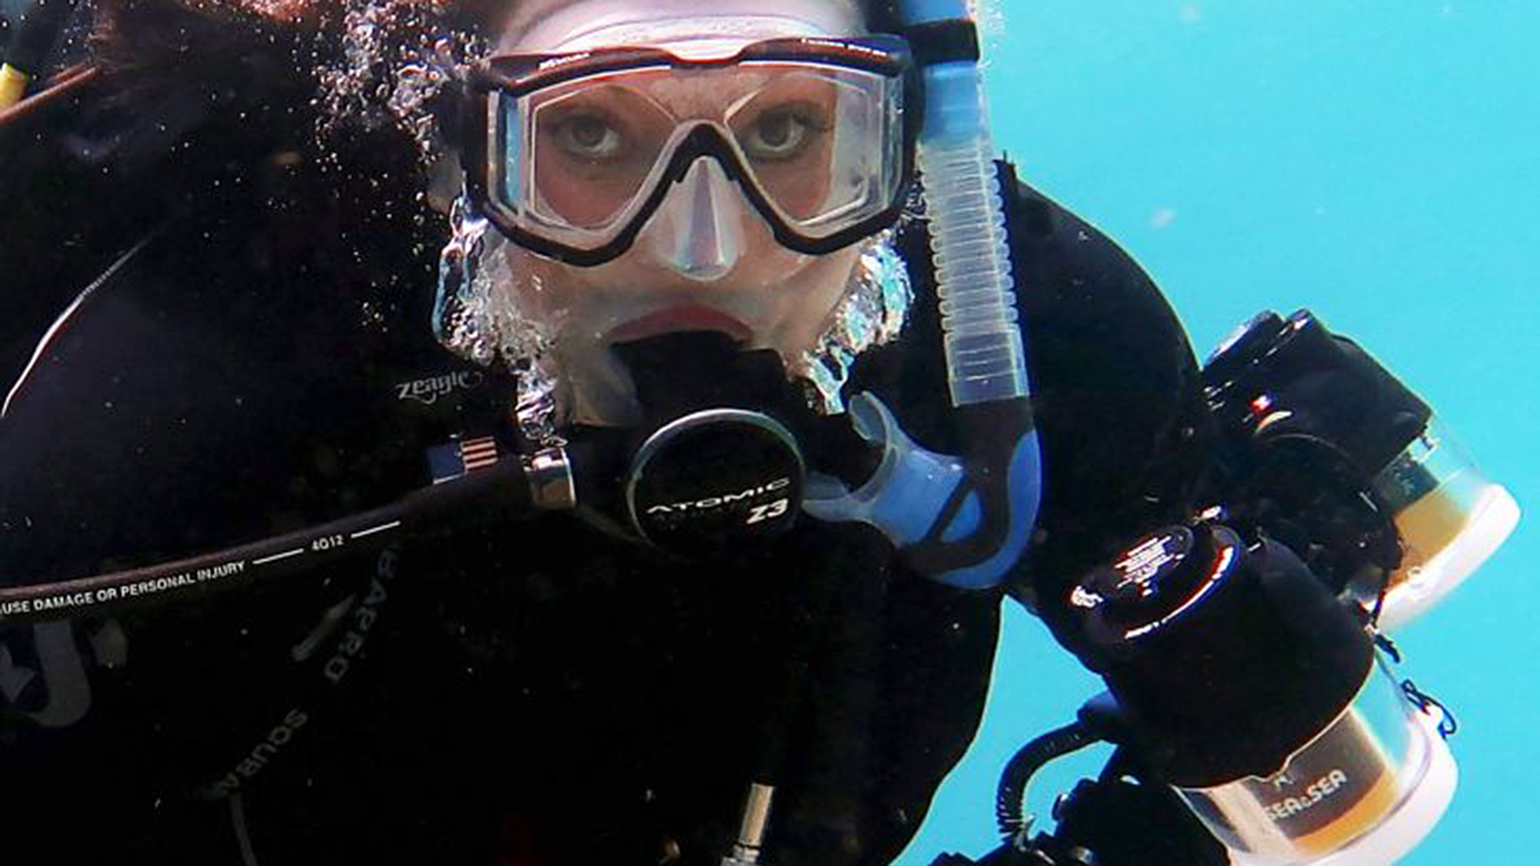 Author and solo world traveler Tam Warner Minton goes scuba-diving